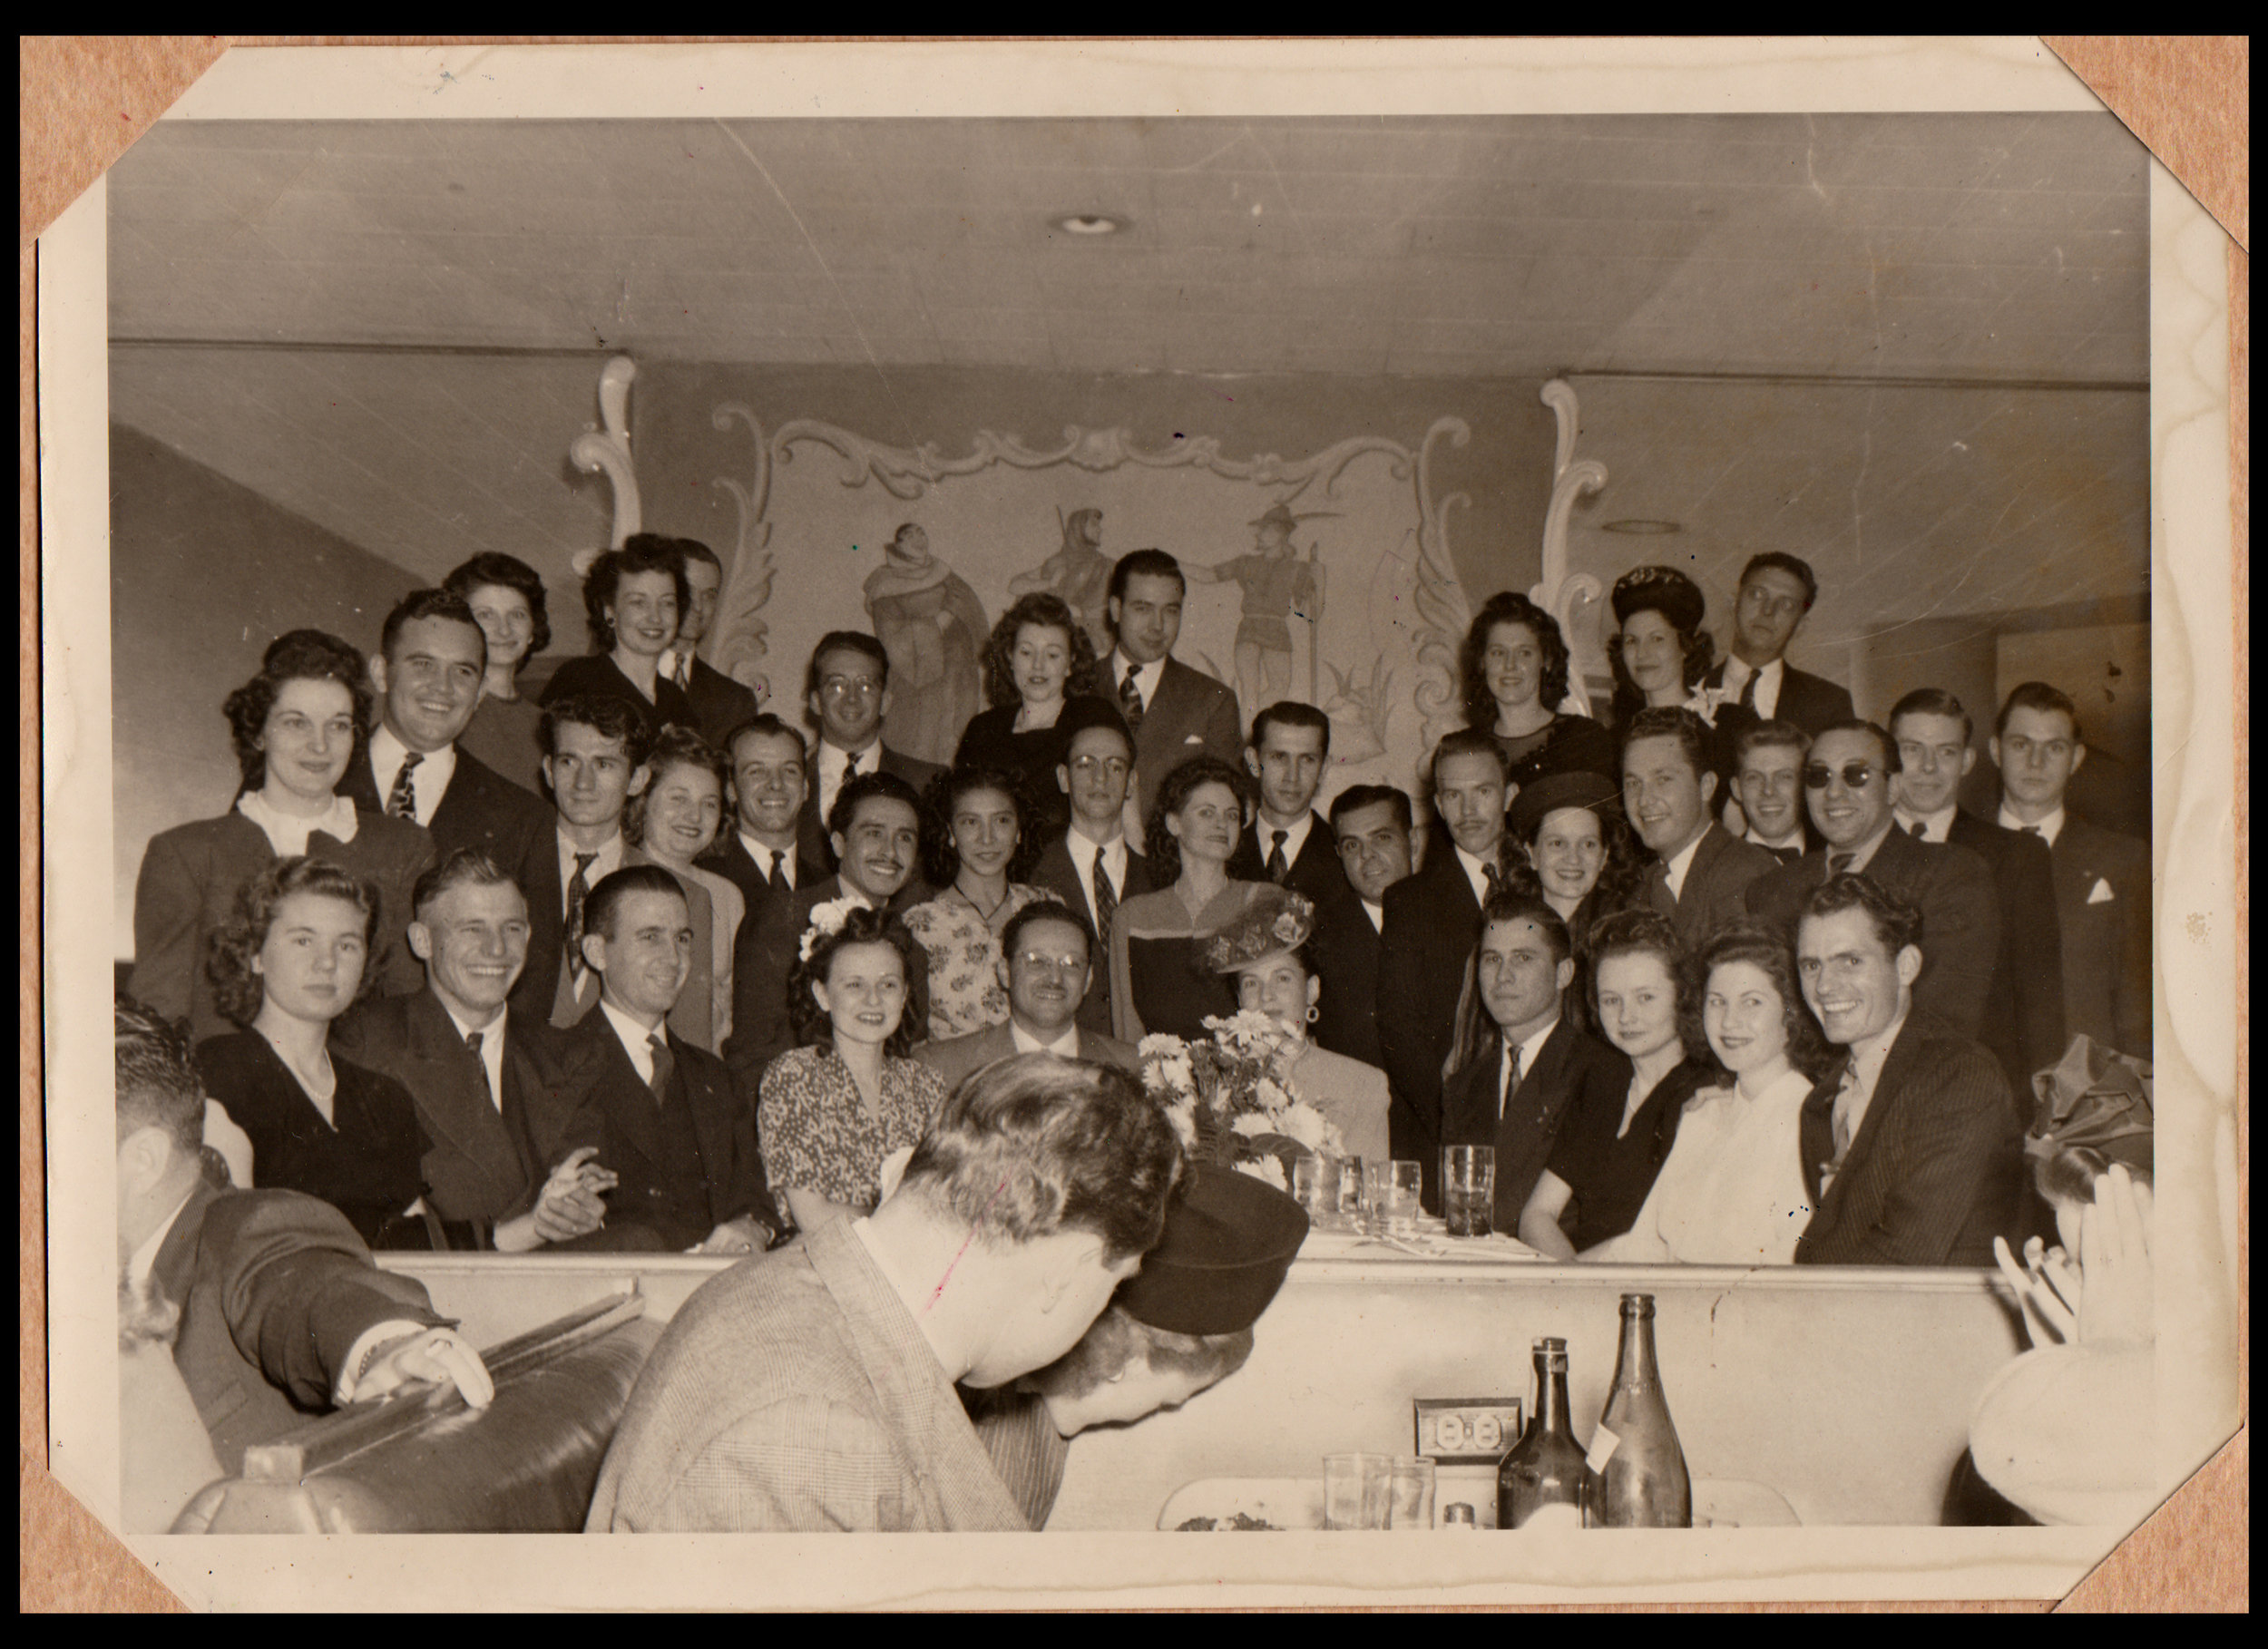 The Burr Birthday Party, 1946 - Dallas, Texas Photograph found in a pile of photographs at Curiosities in Dallas, Texas